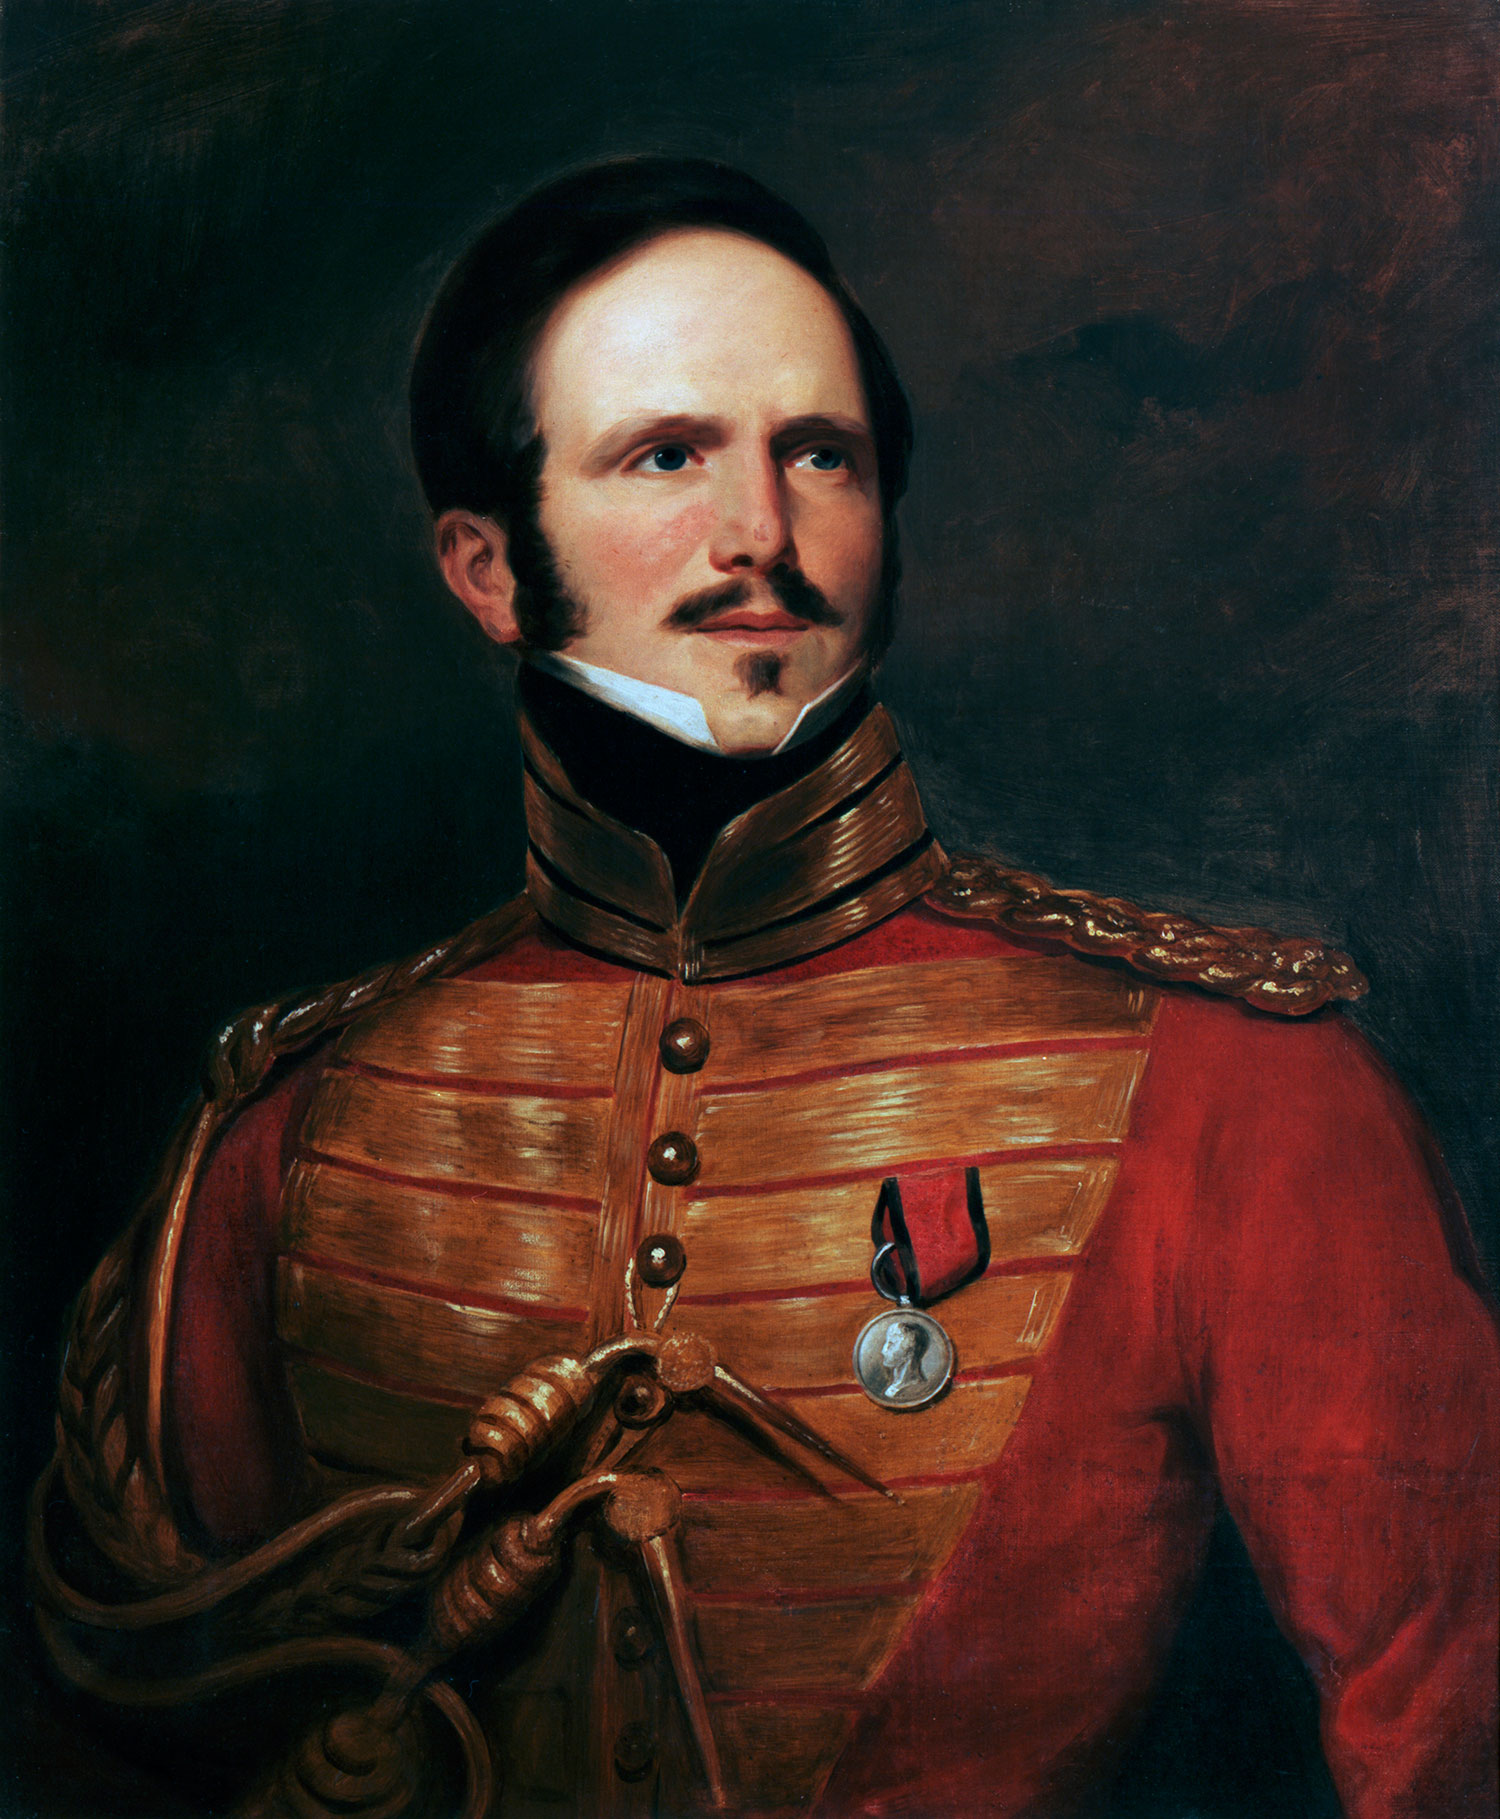 Painting of Major James Wemyss of Poole's Troop, Royal North British Dragoons (Scots Greys), oil on canvas, artist unknown, c. 1826